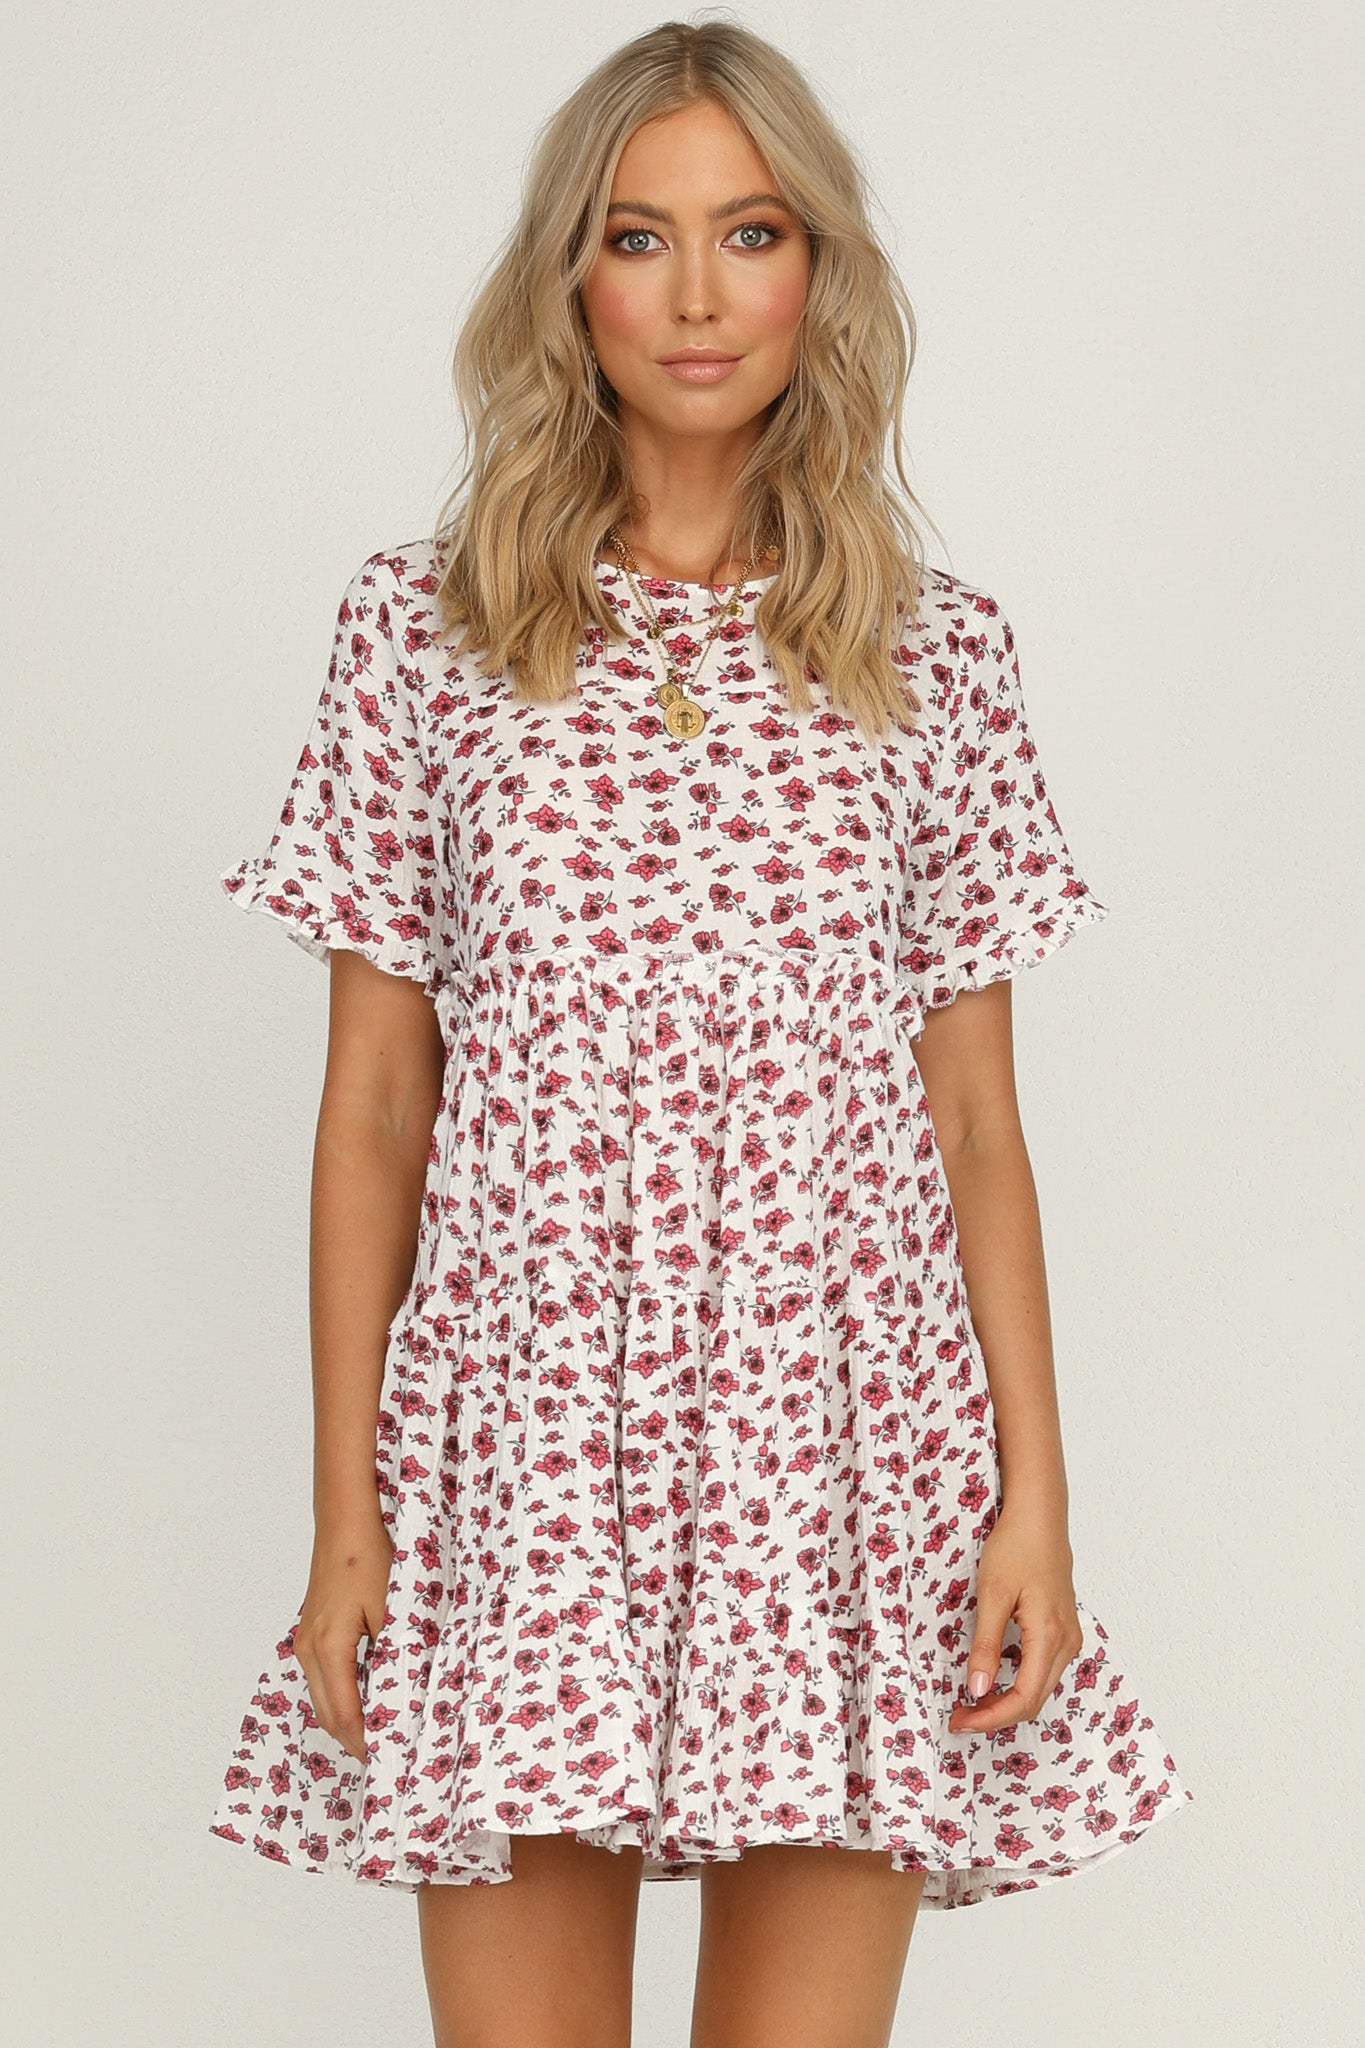 Slice Of Heaven Dress (White Floral)